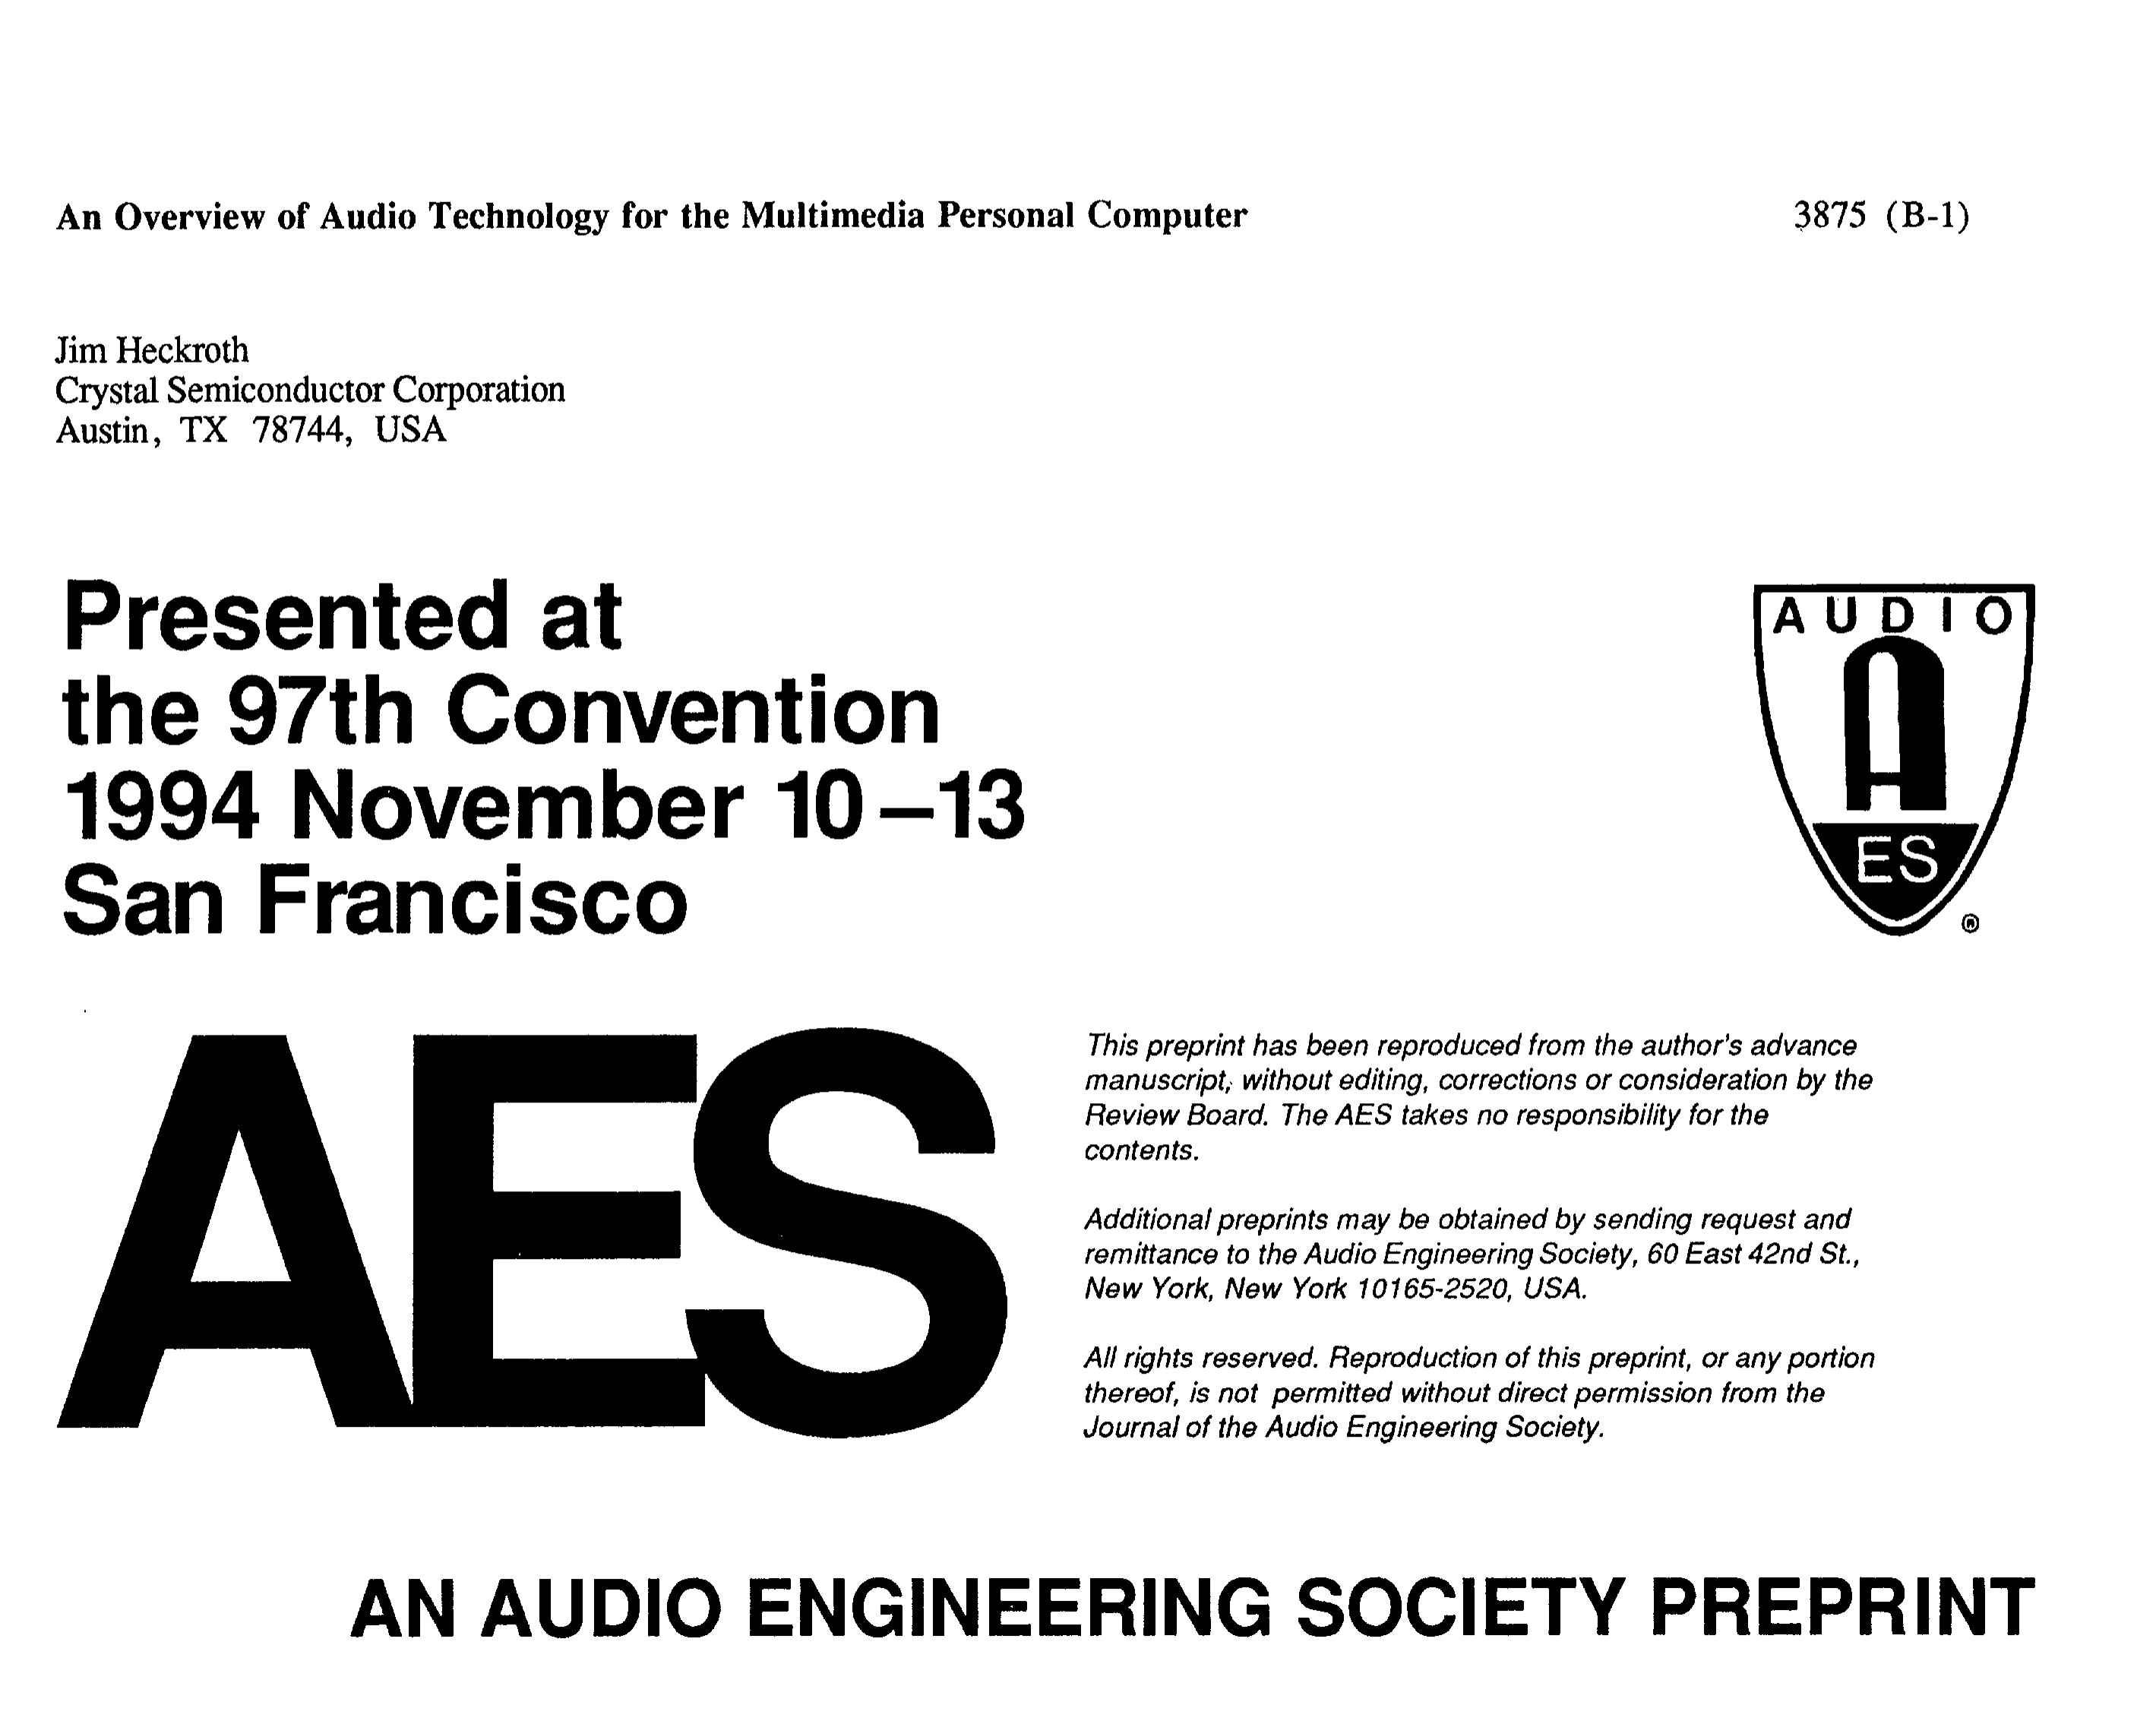 AES E-Library » An Overview of Audio Technology for the Multimedia